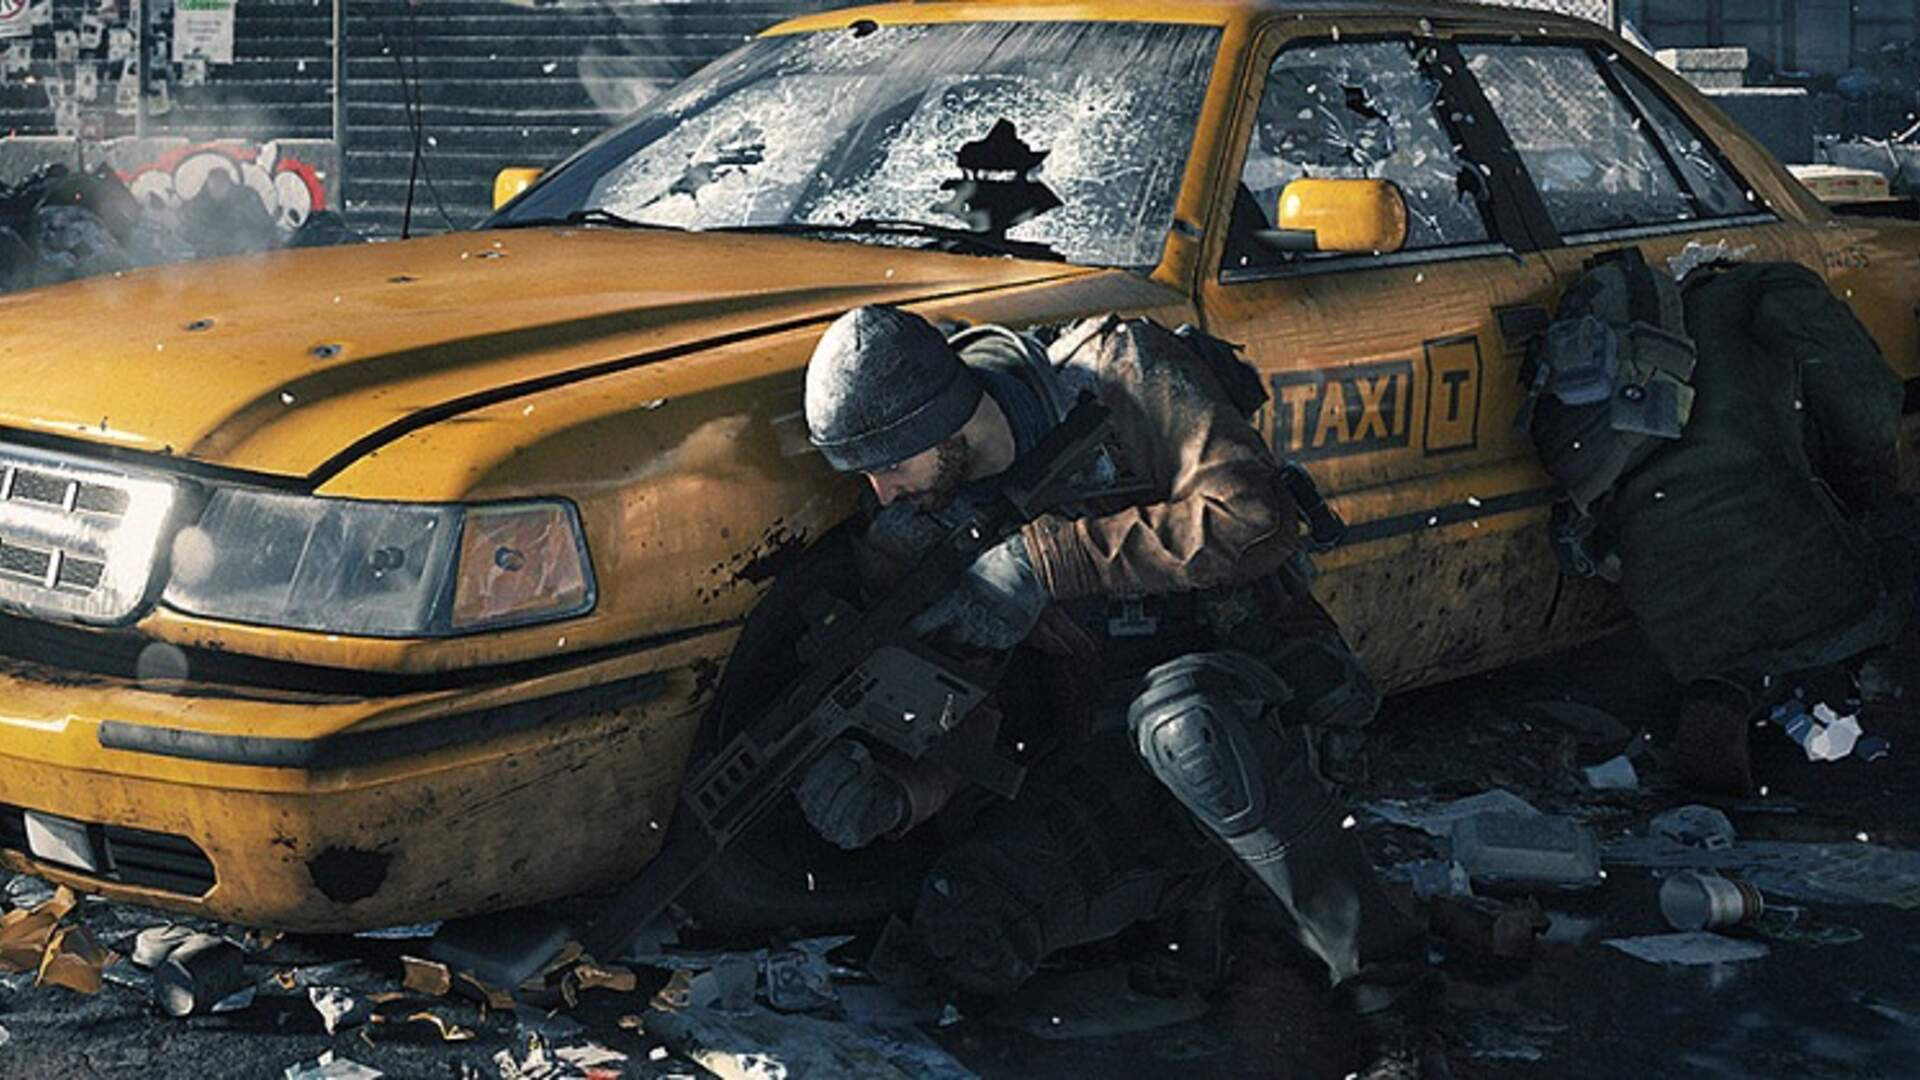 Play Tom Clancy's The Division for Free This Weekend